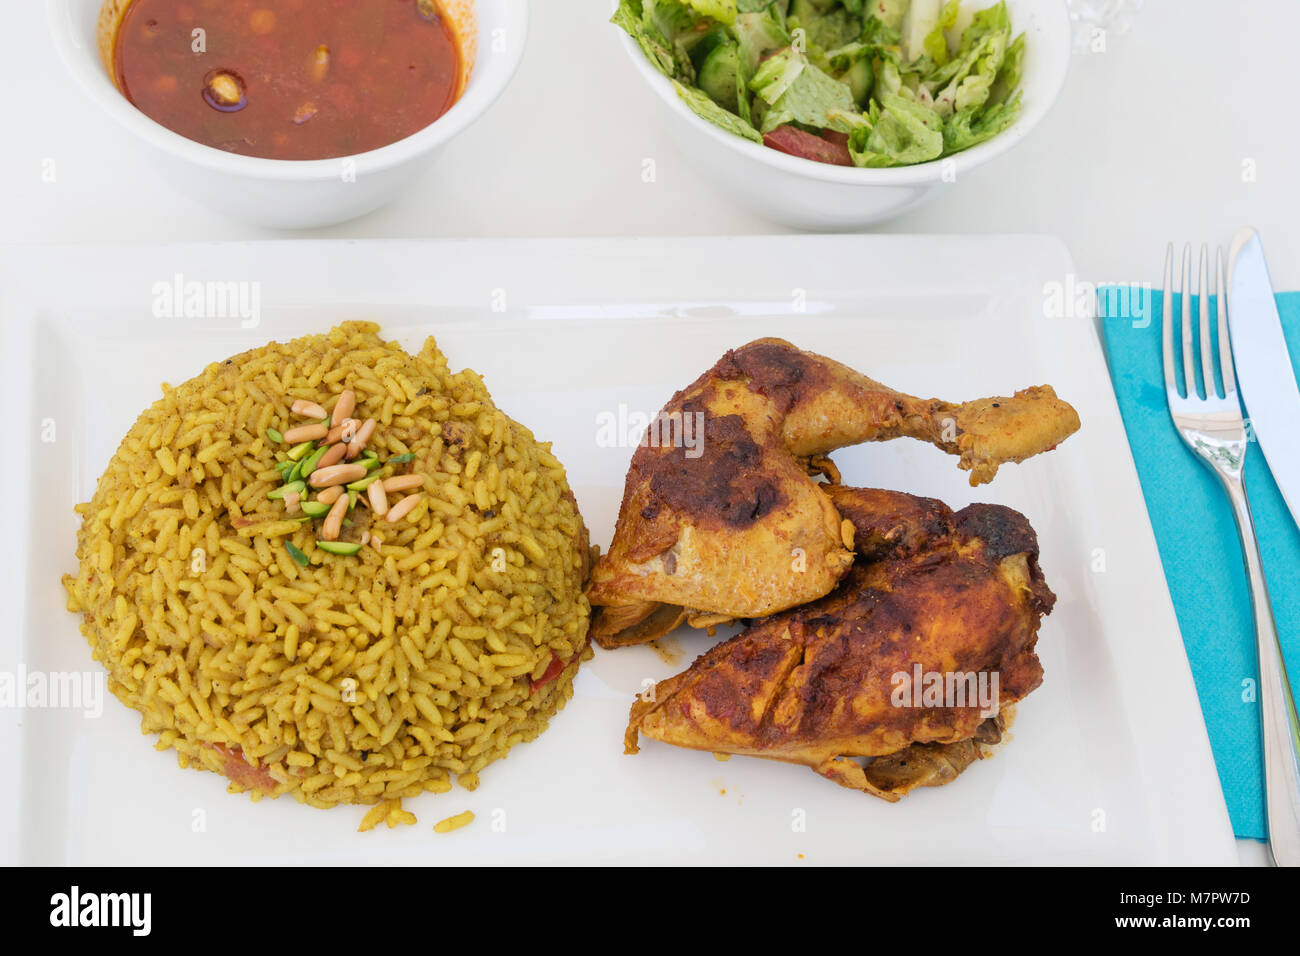 Fried chicken legs with rice accompanied with vegetable salad - Stock Image